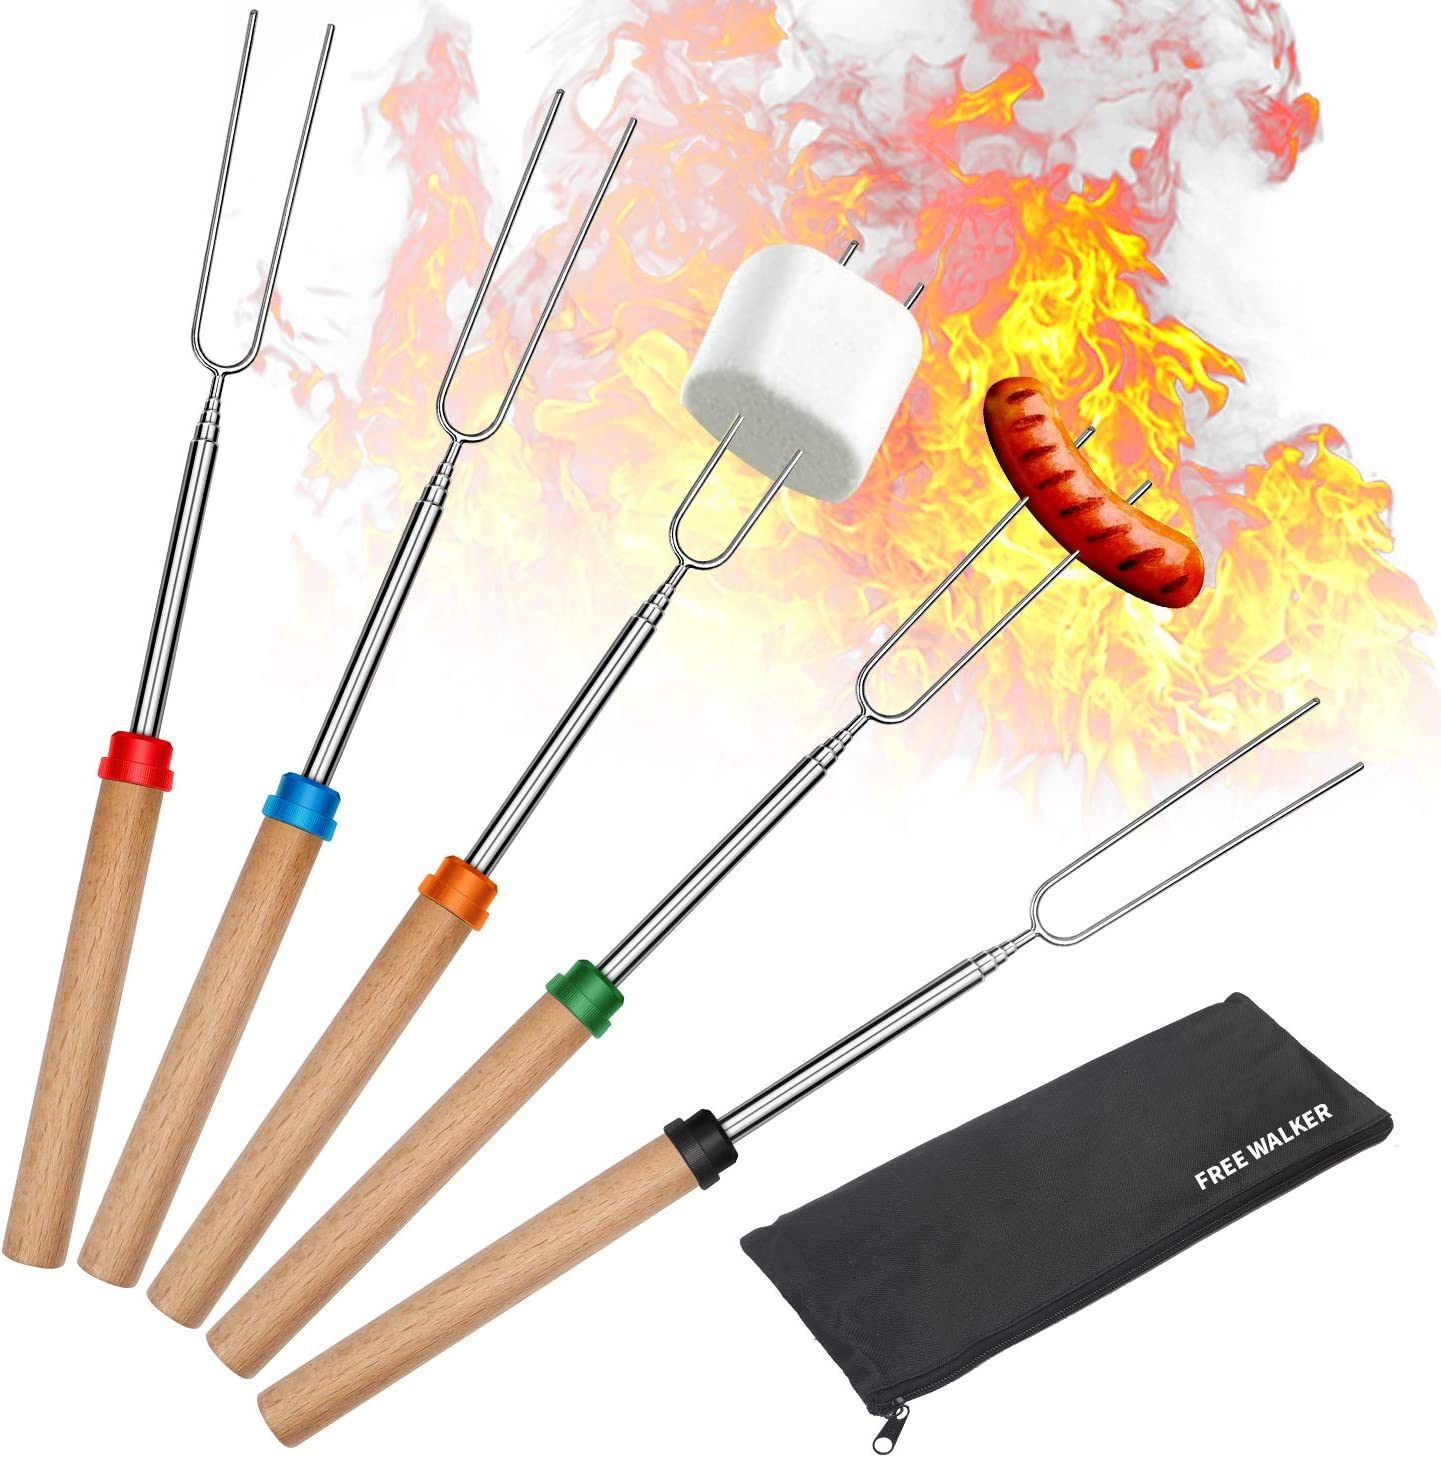 Marshmallow Roasting Smores Sticks,32-inch Extendable Sturdy Stainless Steel Roasting Forks for BBQ,Campfire,Hot Dog,Telescoping Camping Accessories Stove Fork,Safe for Kids,5 Sticks with Storage Bag